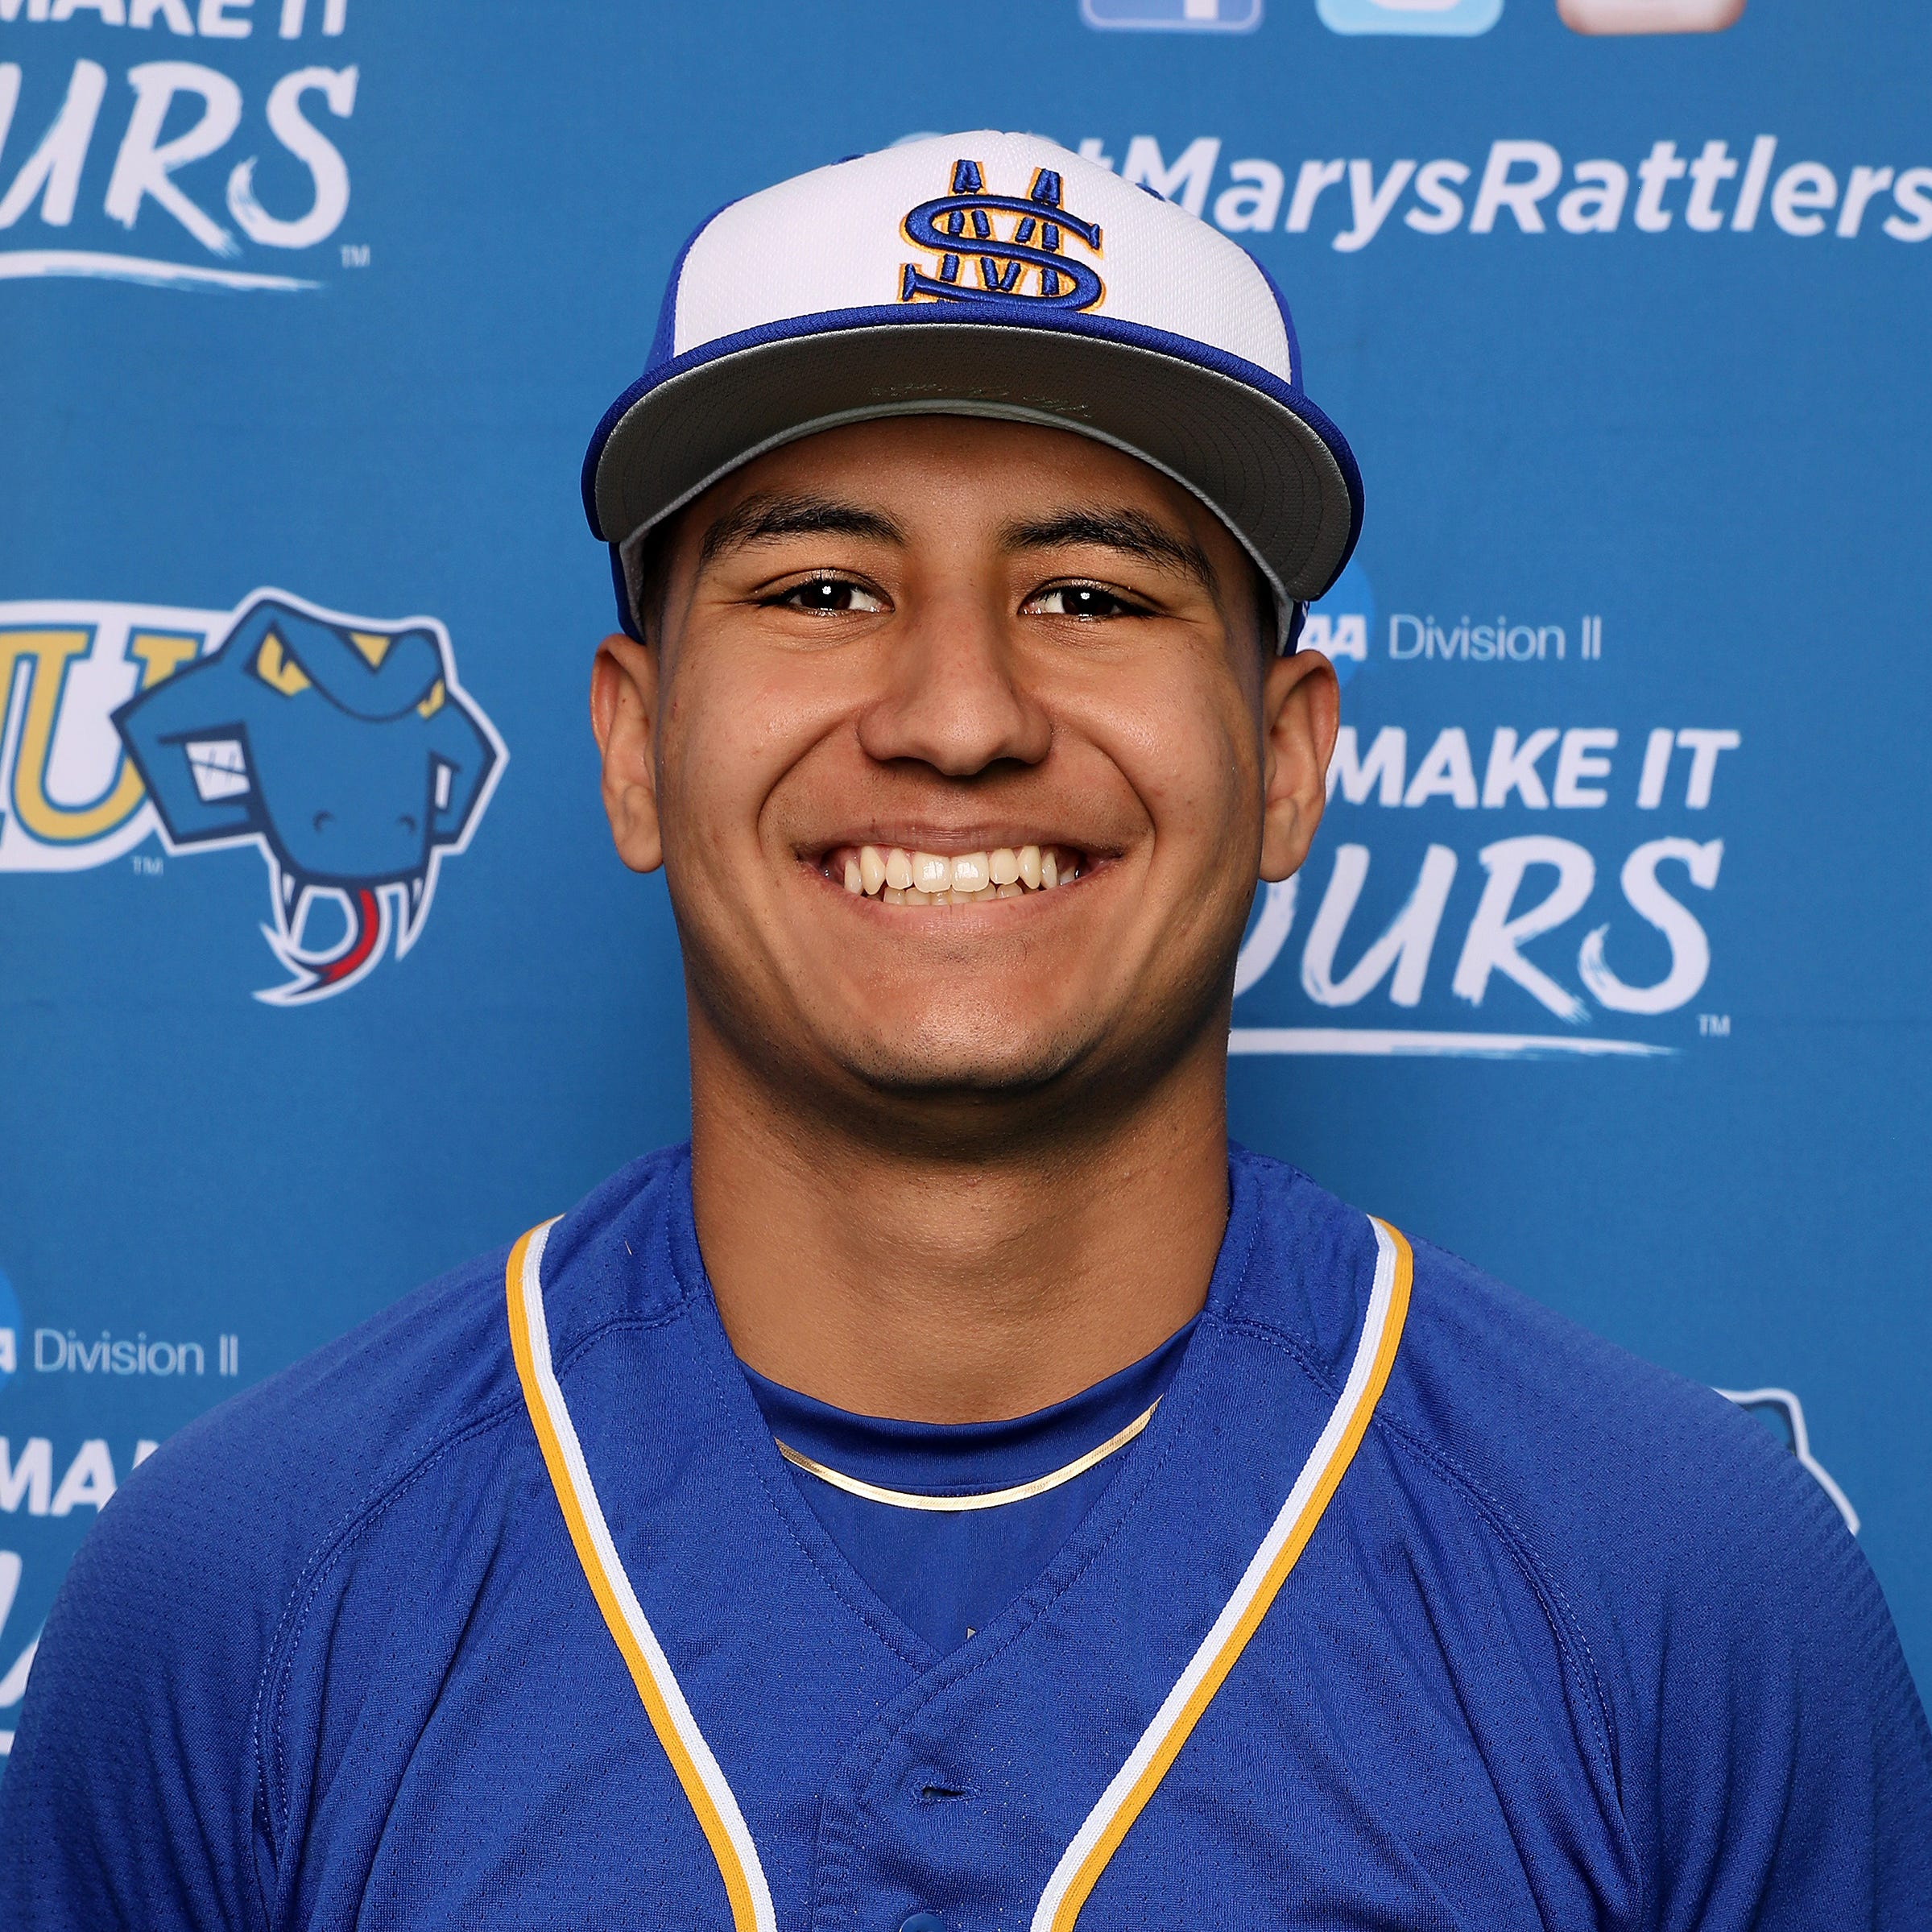 Former El Paso high school baseball players excel at Division II St. Mary's in San Antonio